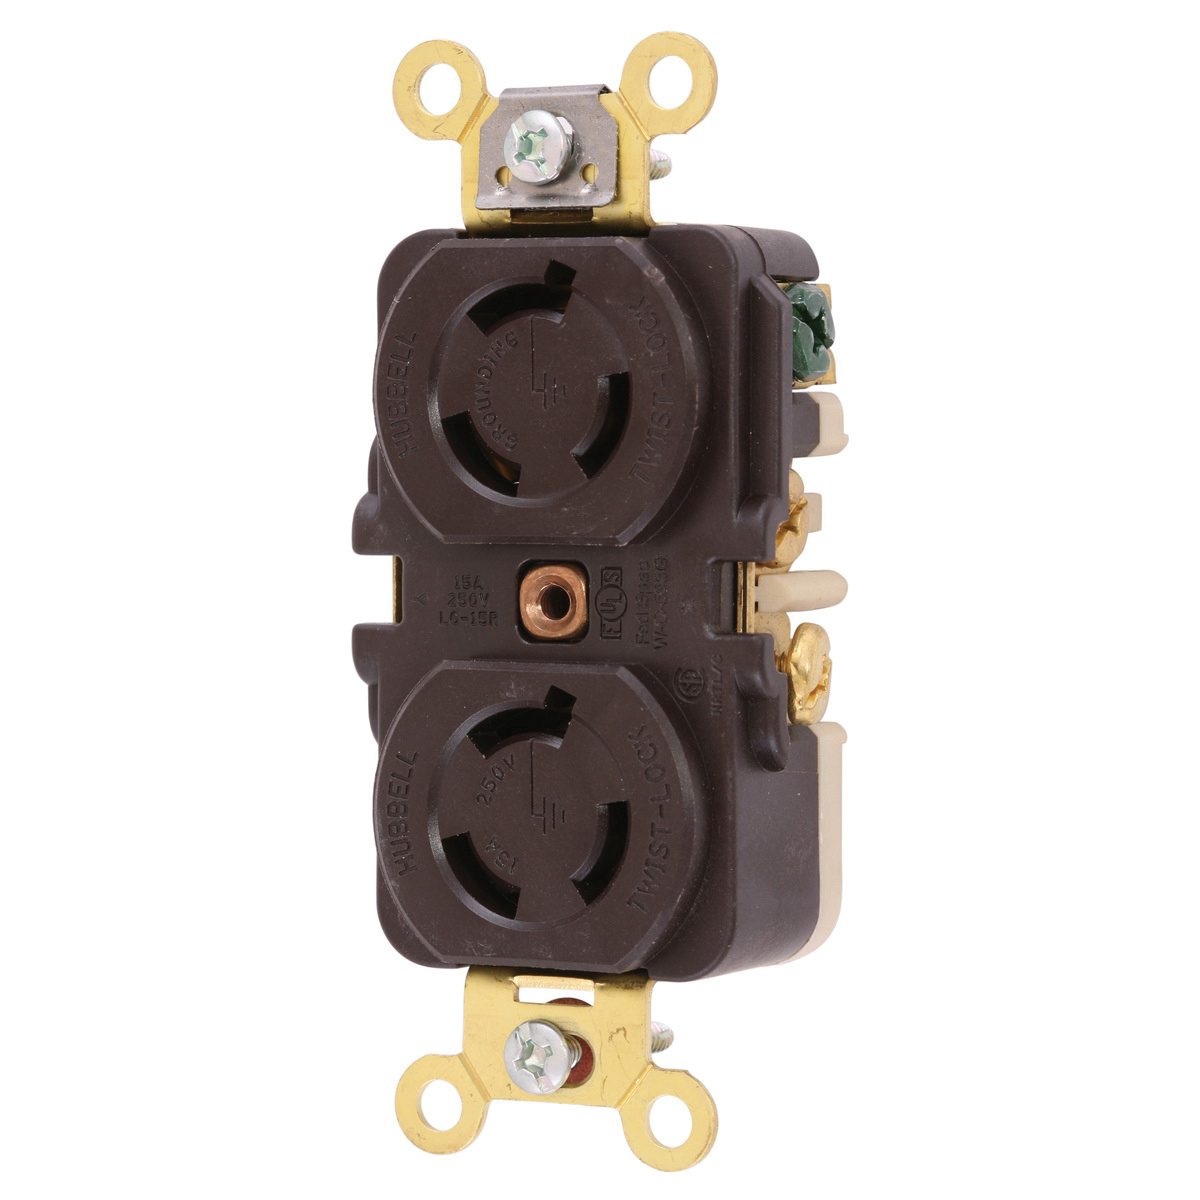 Hubbell Wiring Hbl4550 3 Wire 2 Pole Industrial Grade Locking Duplex Ac Receptacle 250